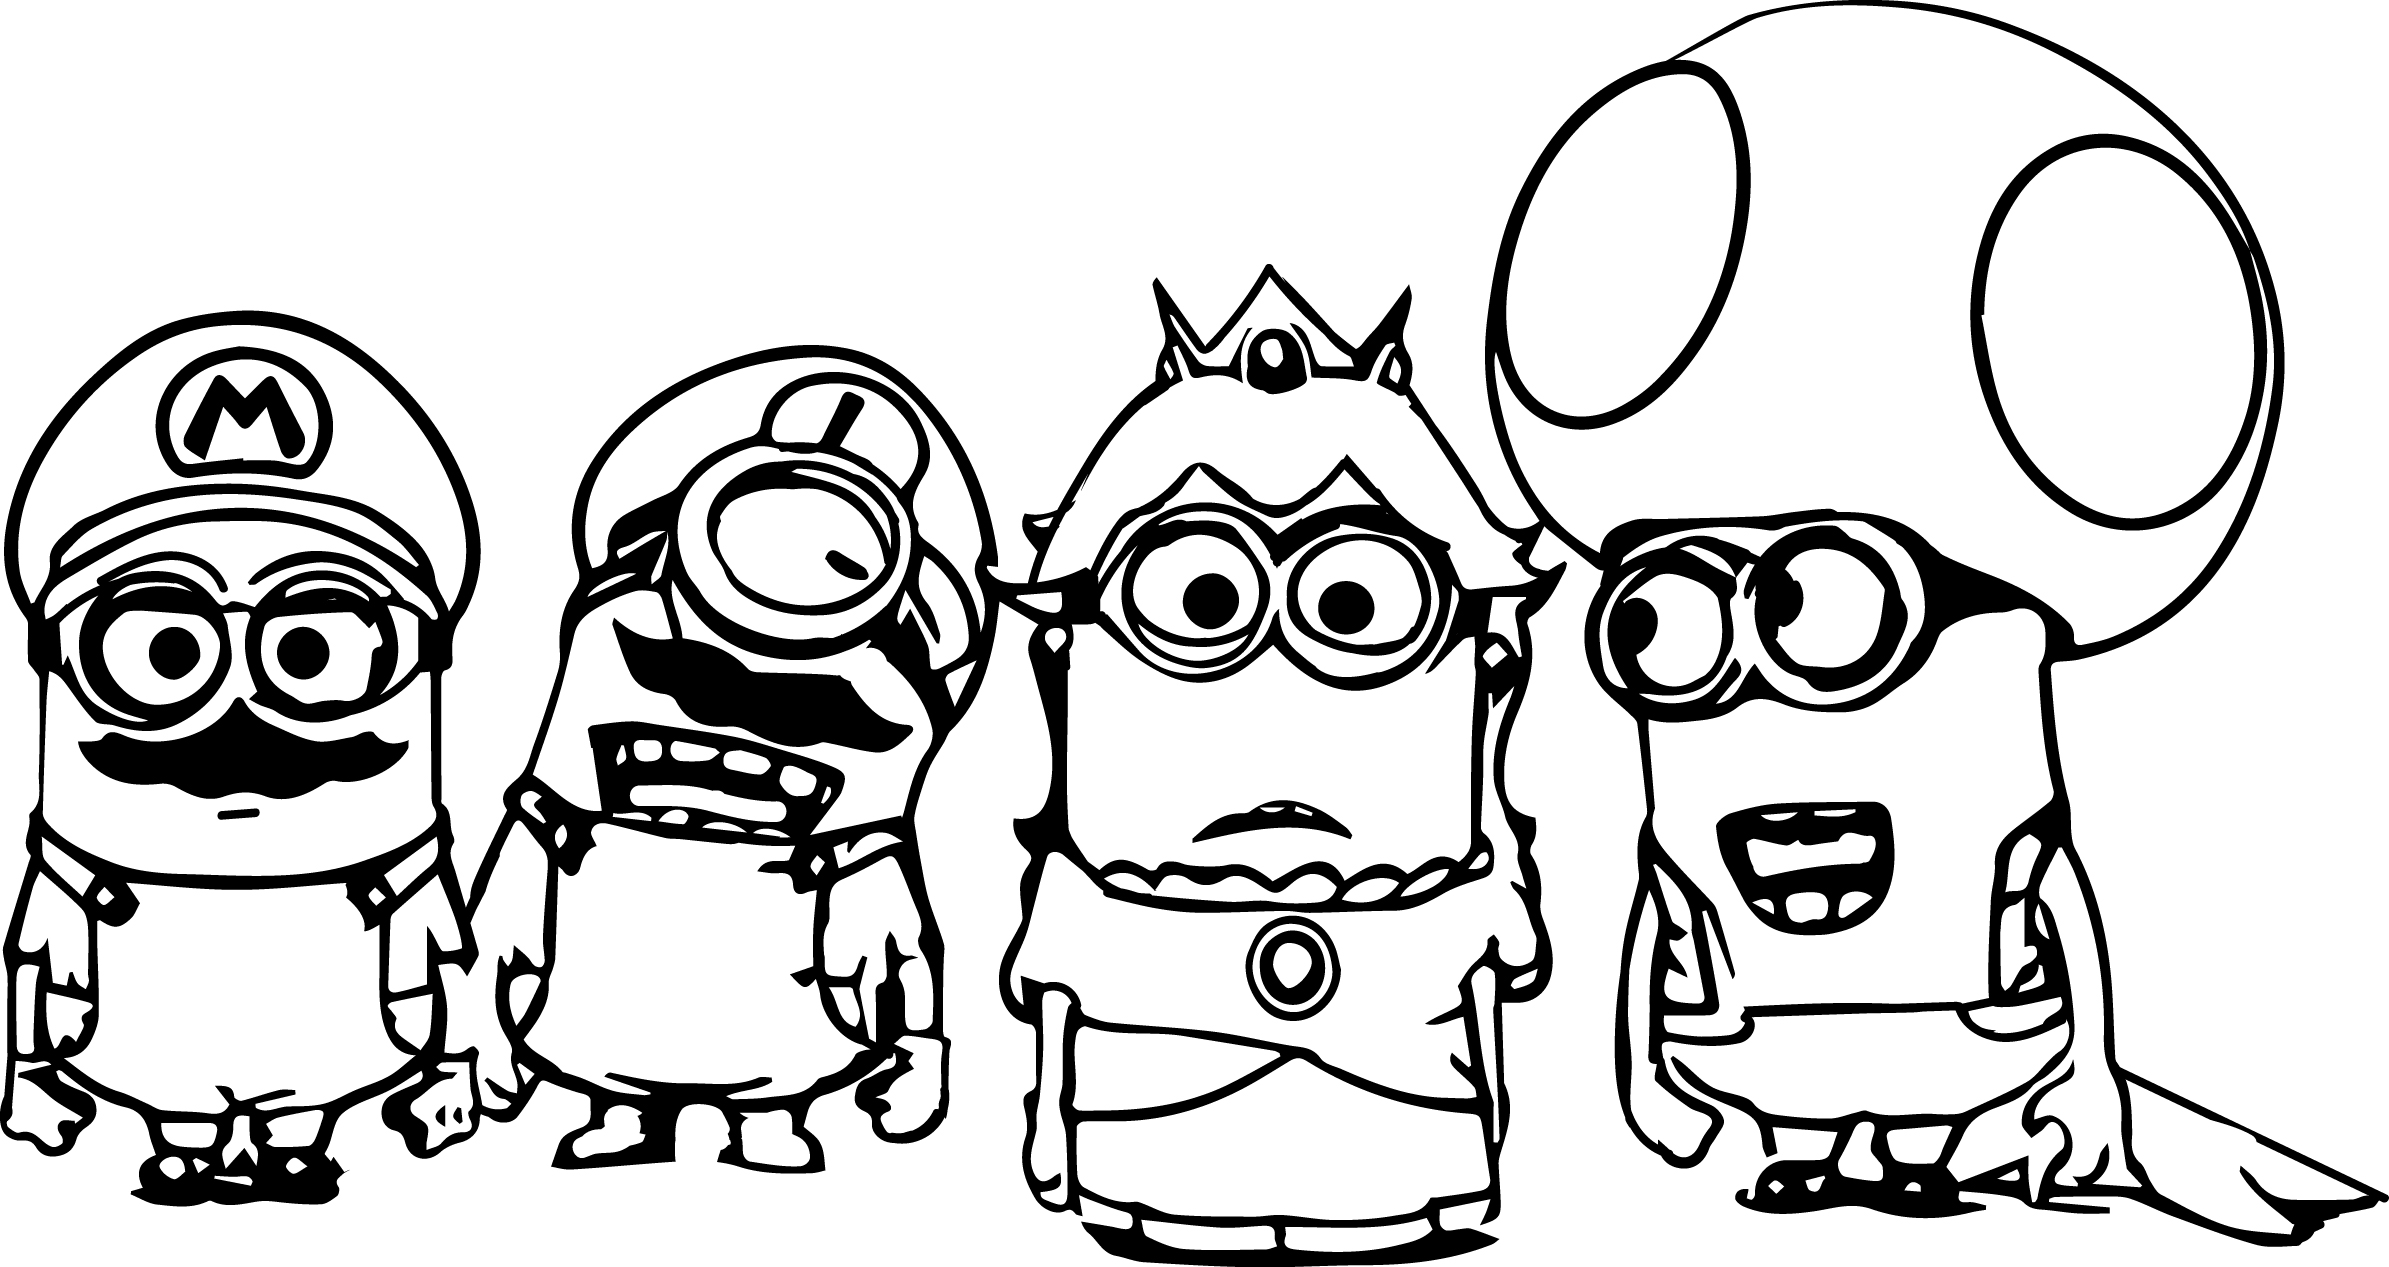 Coloring Pages Minions Amazing Minion Coloring Pages  Best Coloring Pages For Kids Design Ideas